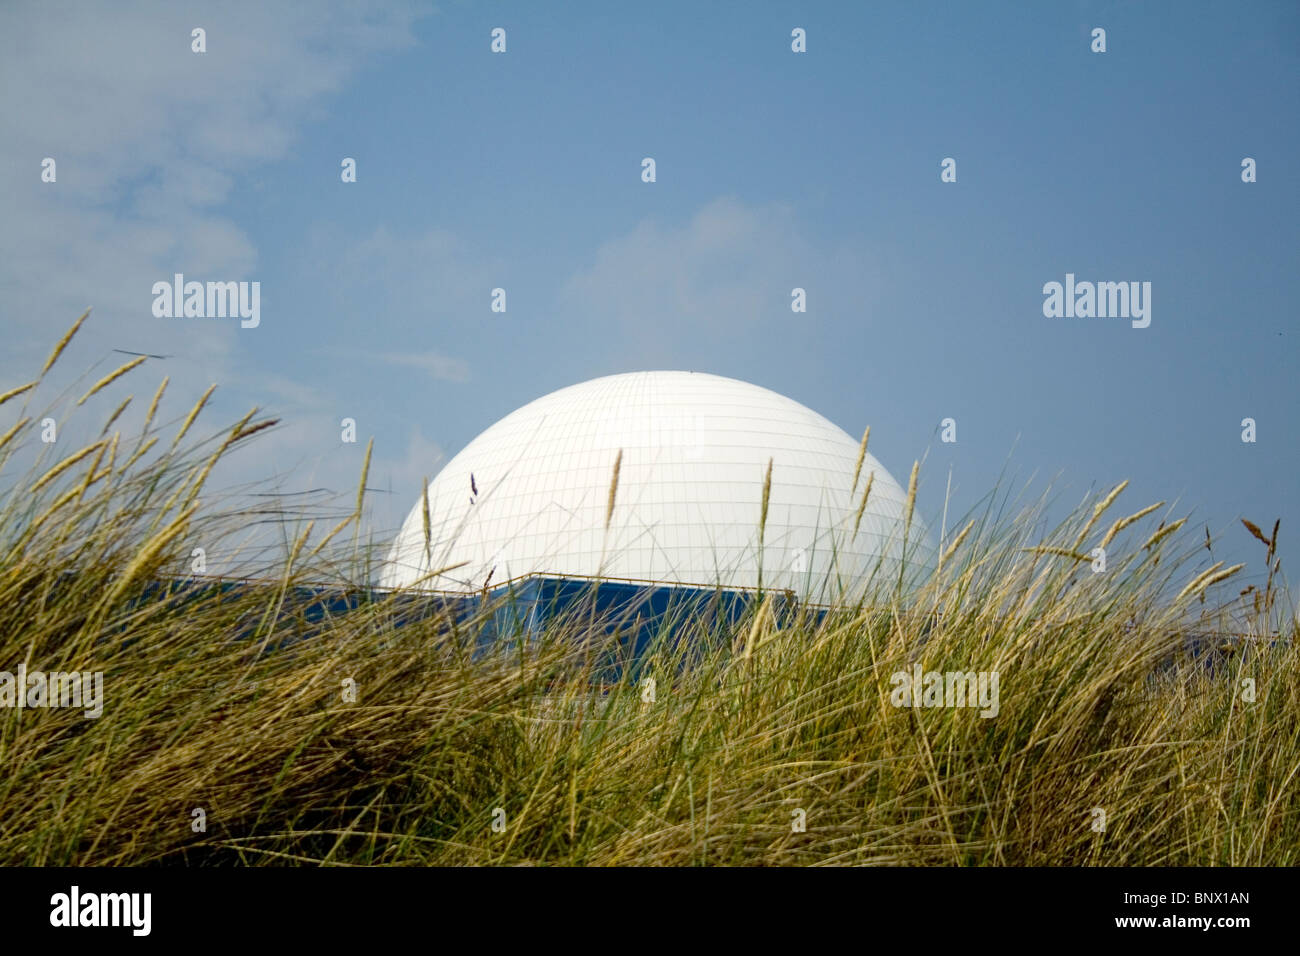 The iconic dome of Sizewell B nuclear power station appearing through the sea grass. - Stock Image